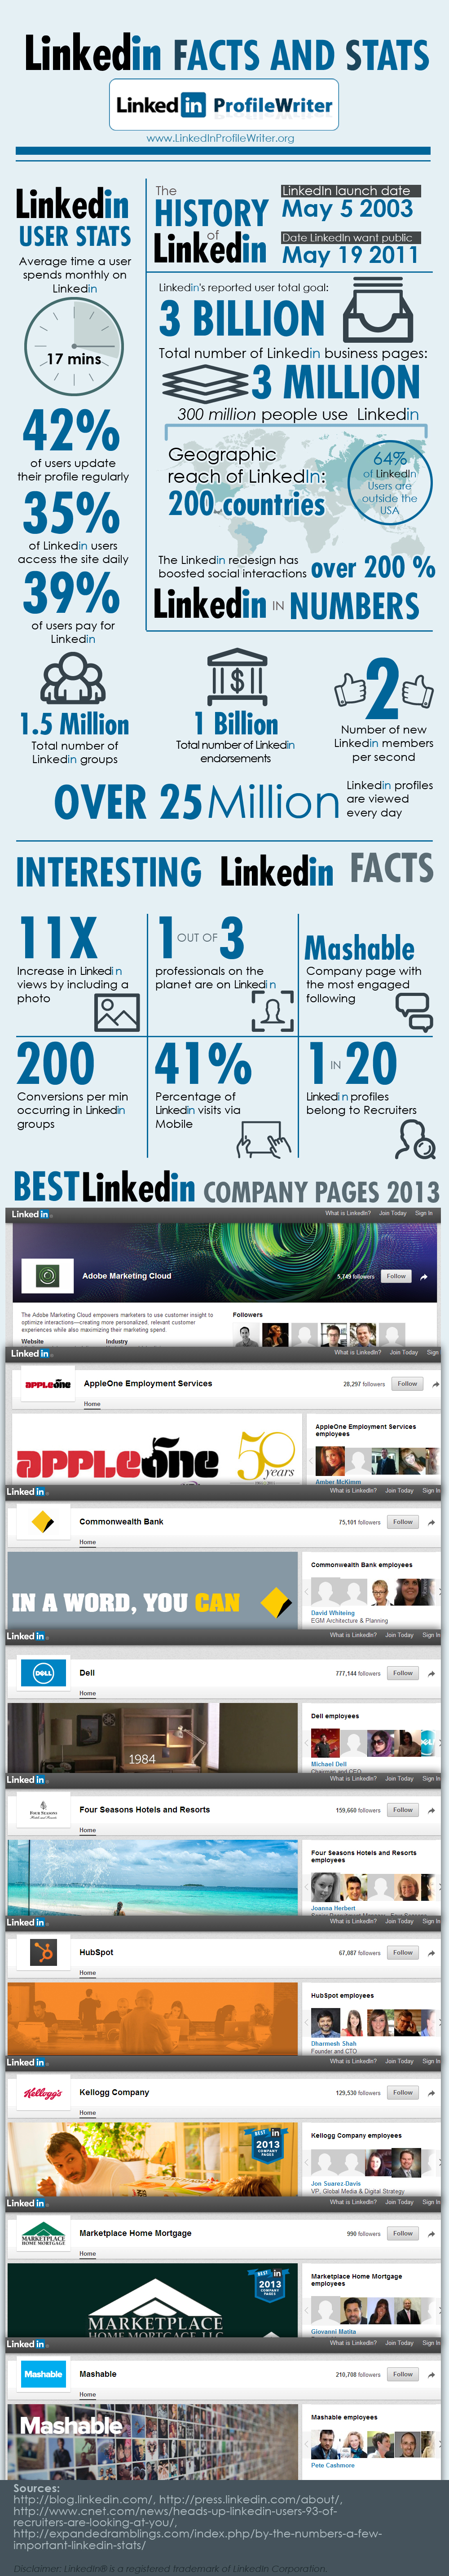 linkedin facts and stats